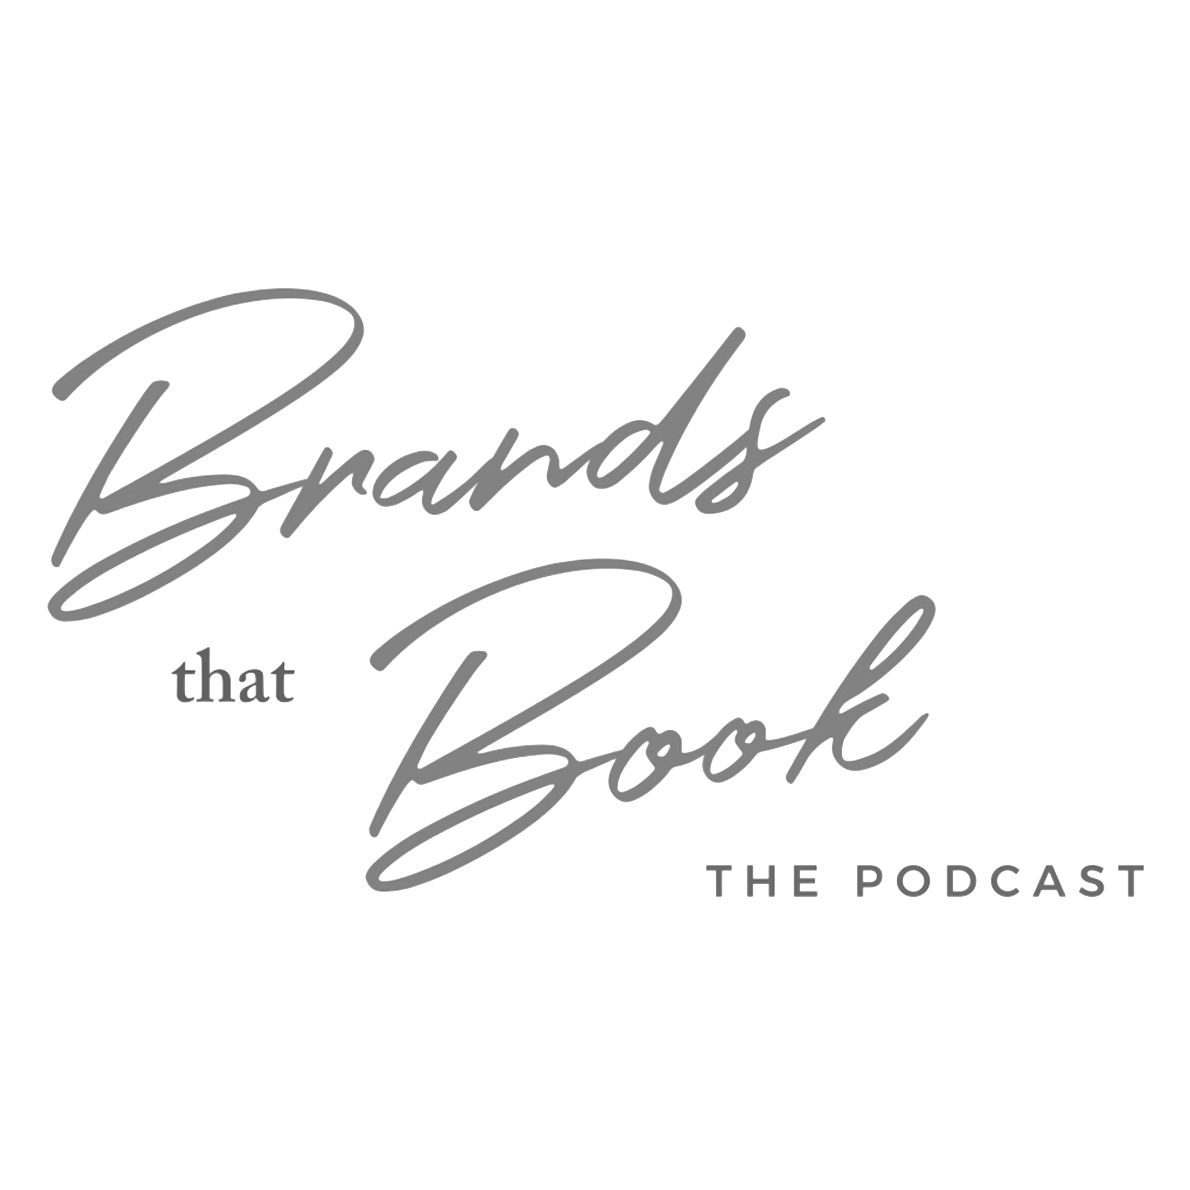 brands that book podcast